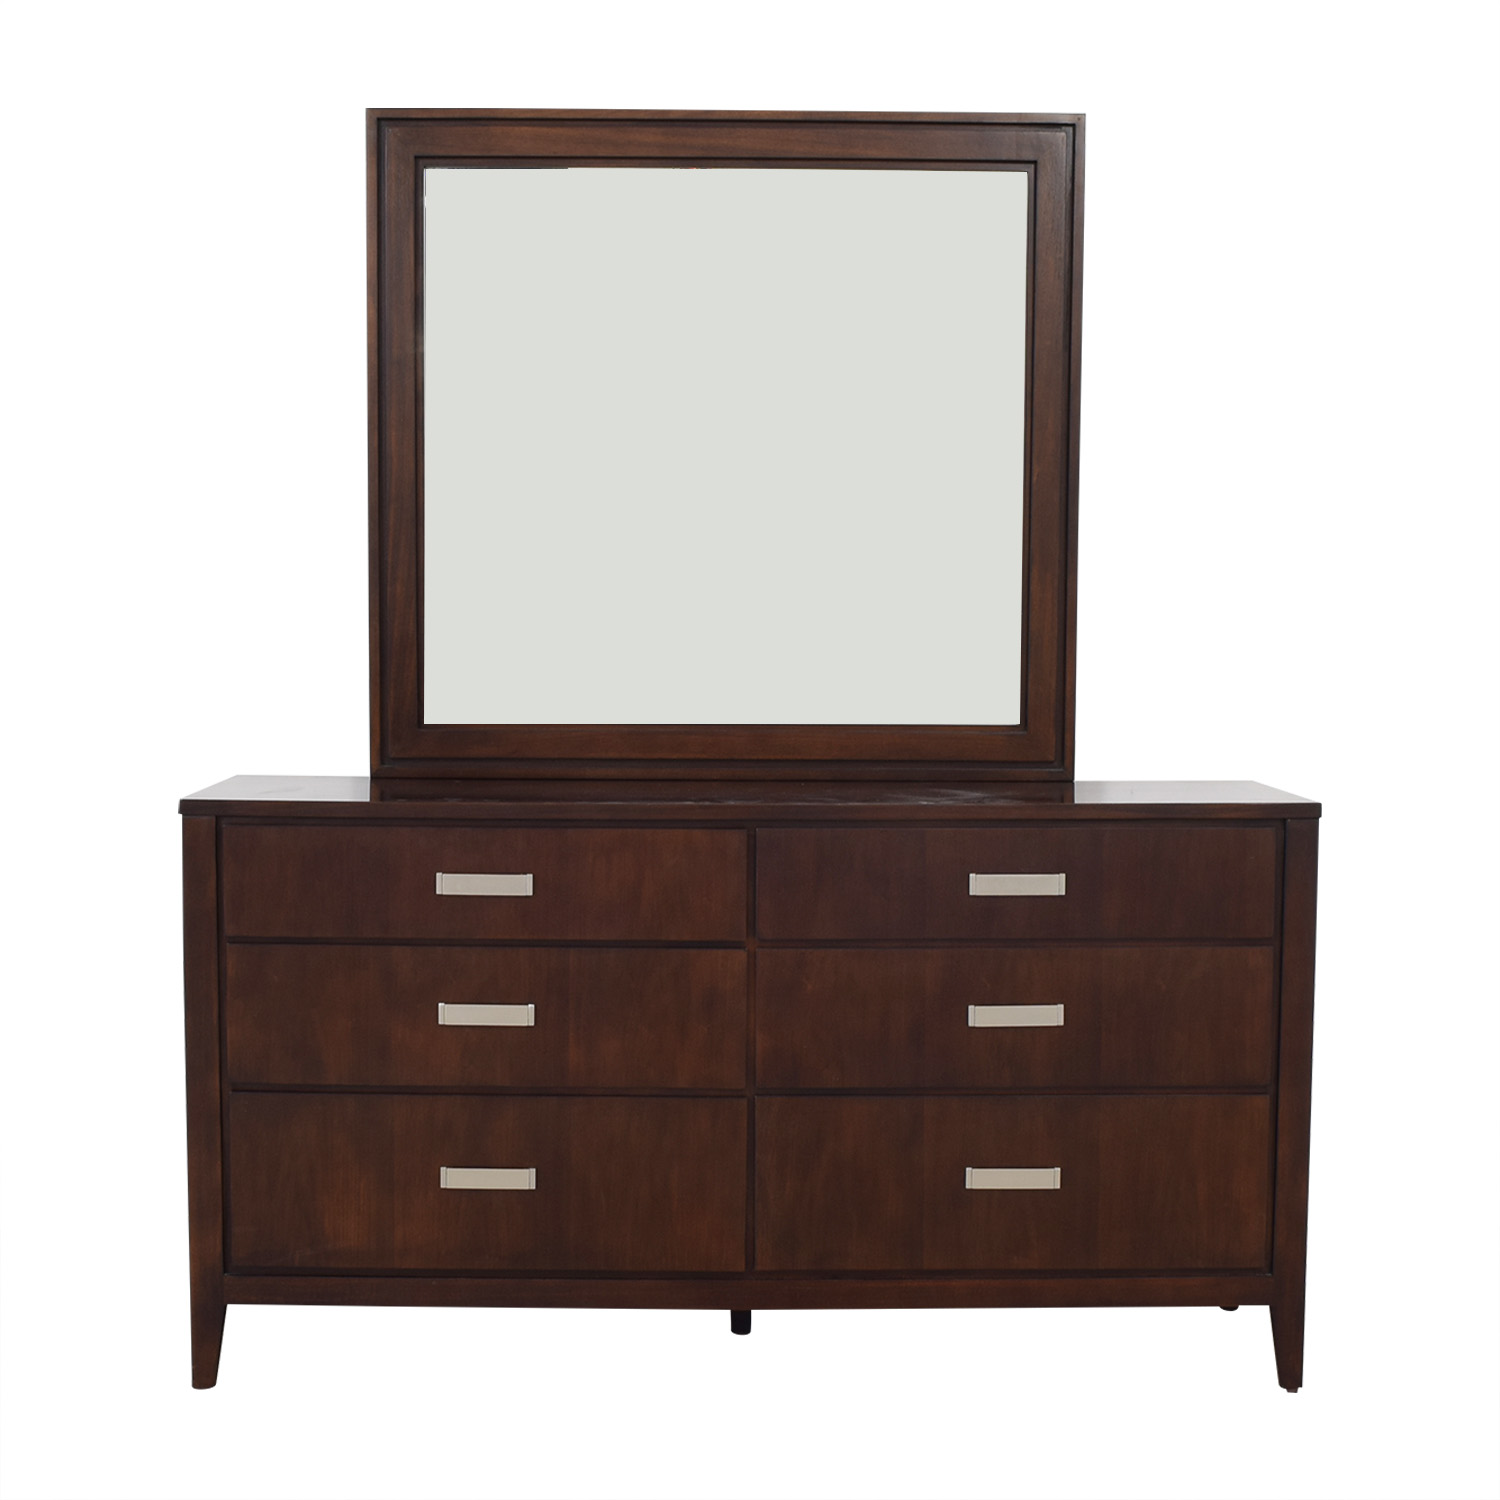 Raymour & Flanigan Raymour & Flanigan Kian Walnut Dresser with Mirror price